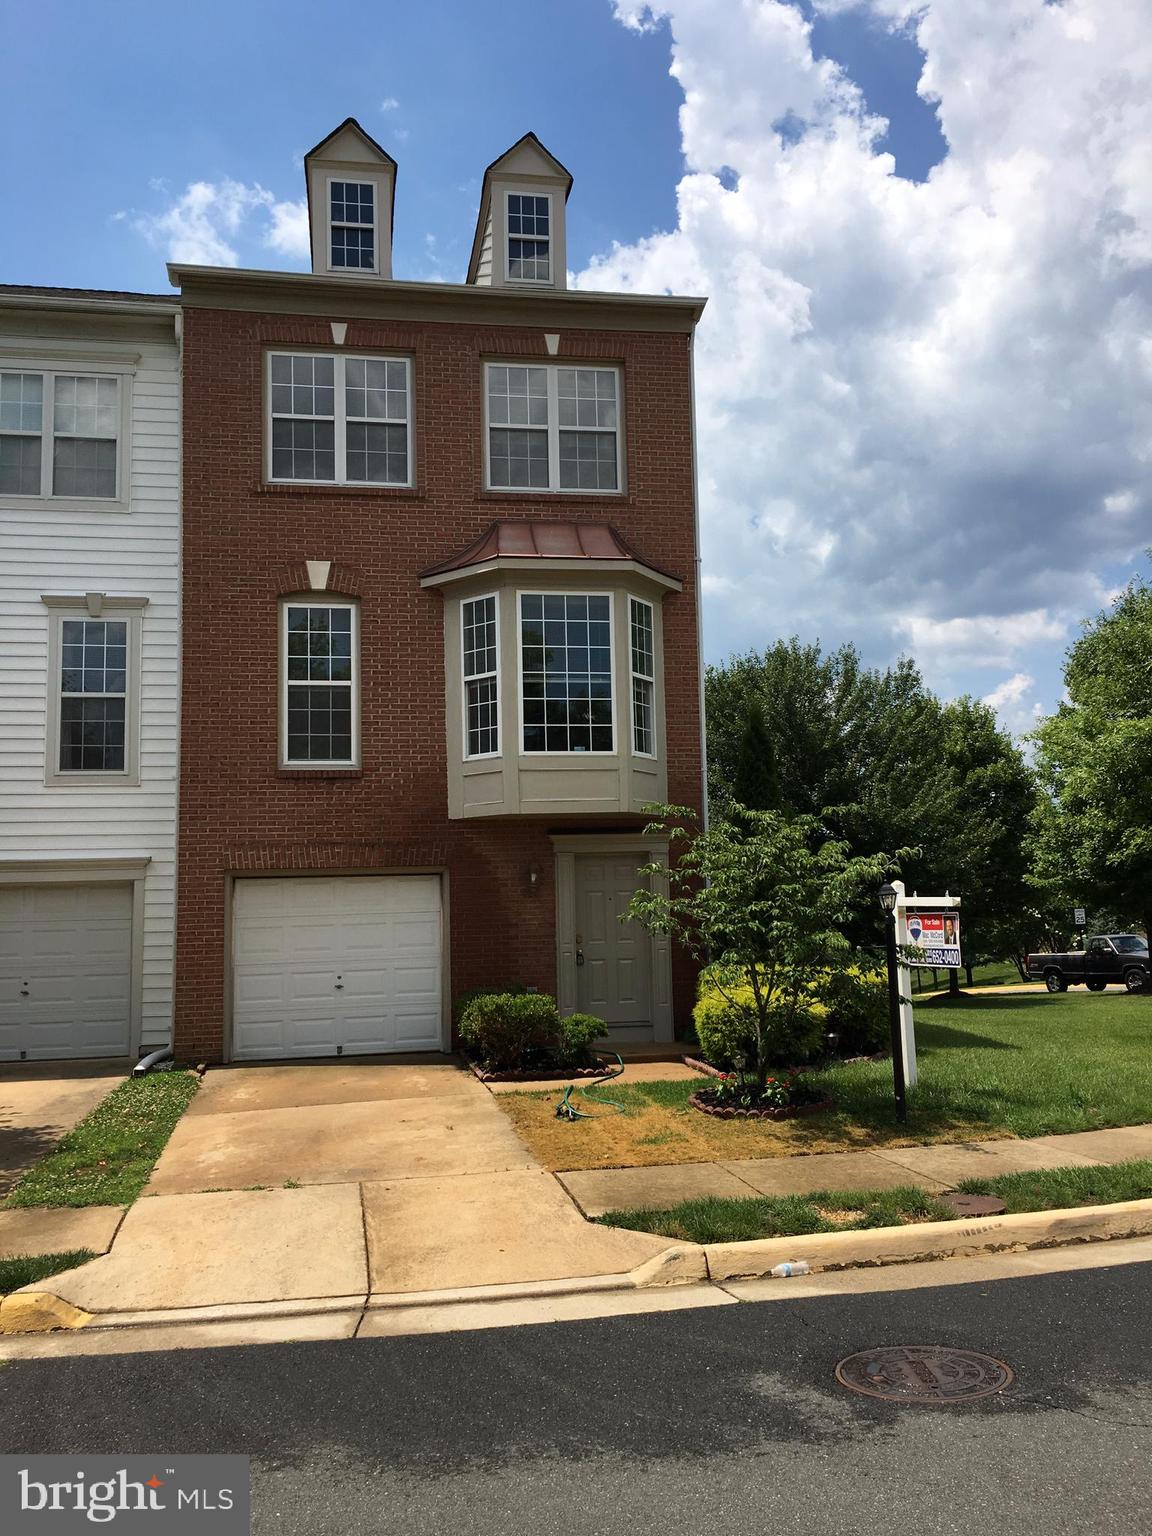 This is a large end unit and one of the biggest in the neighborhood. Freshly painted and new granite countertops. All three levels bump out. Large bedrooms, spacious closets, and wide staircases. Hardwood floors on main level w large eat in kitchen w breakfast area and room at counter for two stools, spacious dining room and large living room w fireplace and bay window. Den w walk out to deck. Lower level has a bedroom, bathroom and large rec room, as well as access to one car garage.